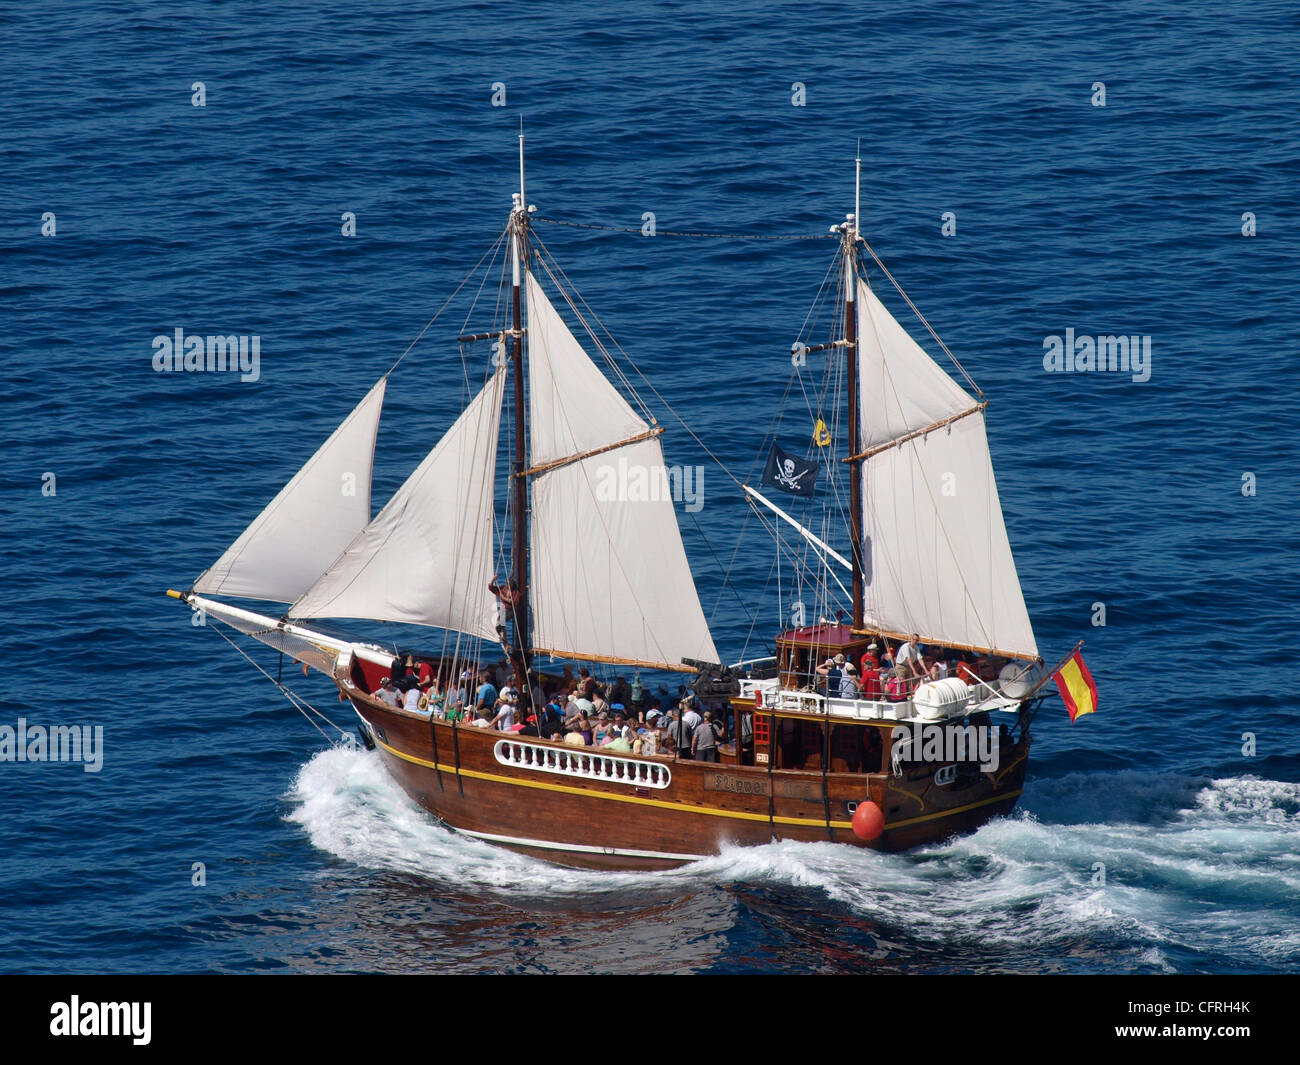 BOAT FLIPPER UNO LEAVING  LOS GIGANTES HARBOUR WHALE AND DOLPHIN WATCHING TRIP  TENERIFE SPAIN - Stock Image